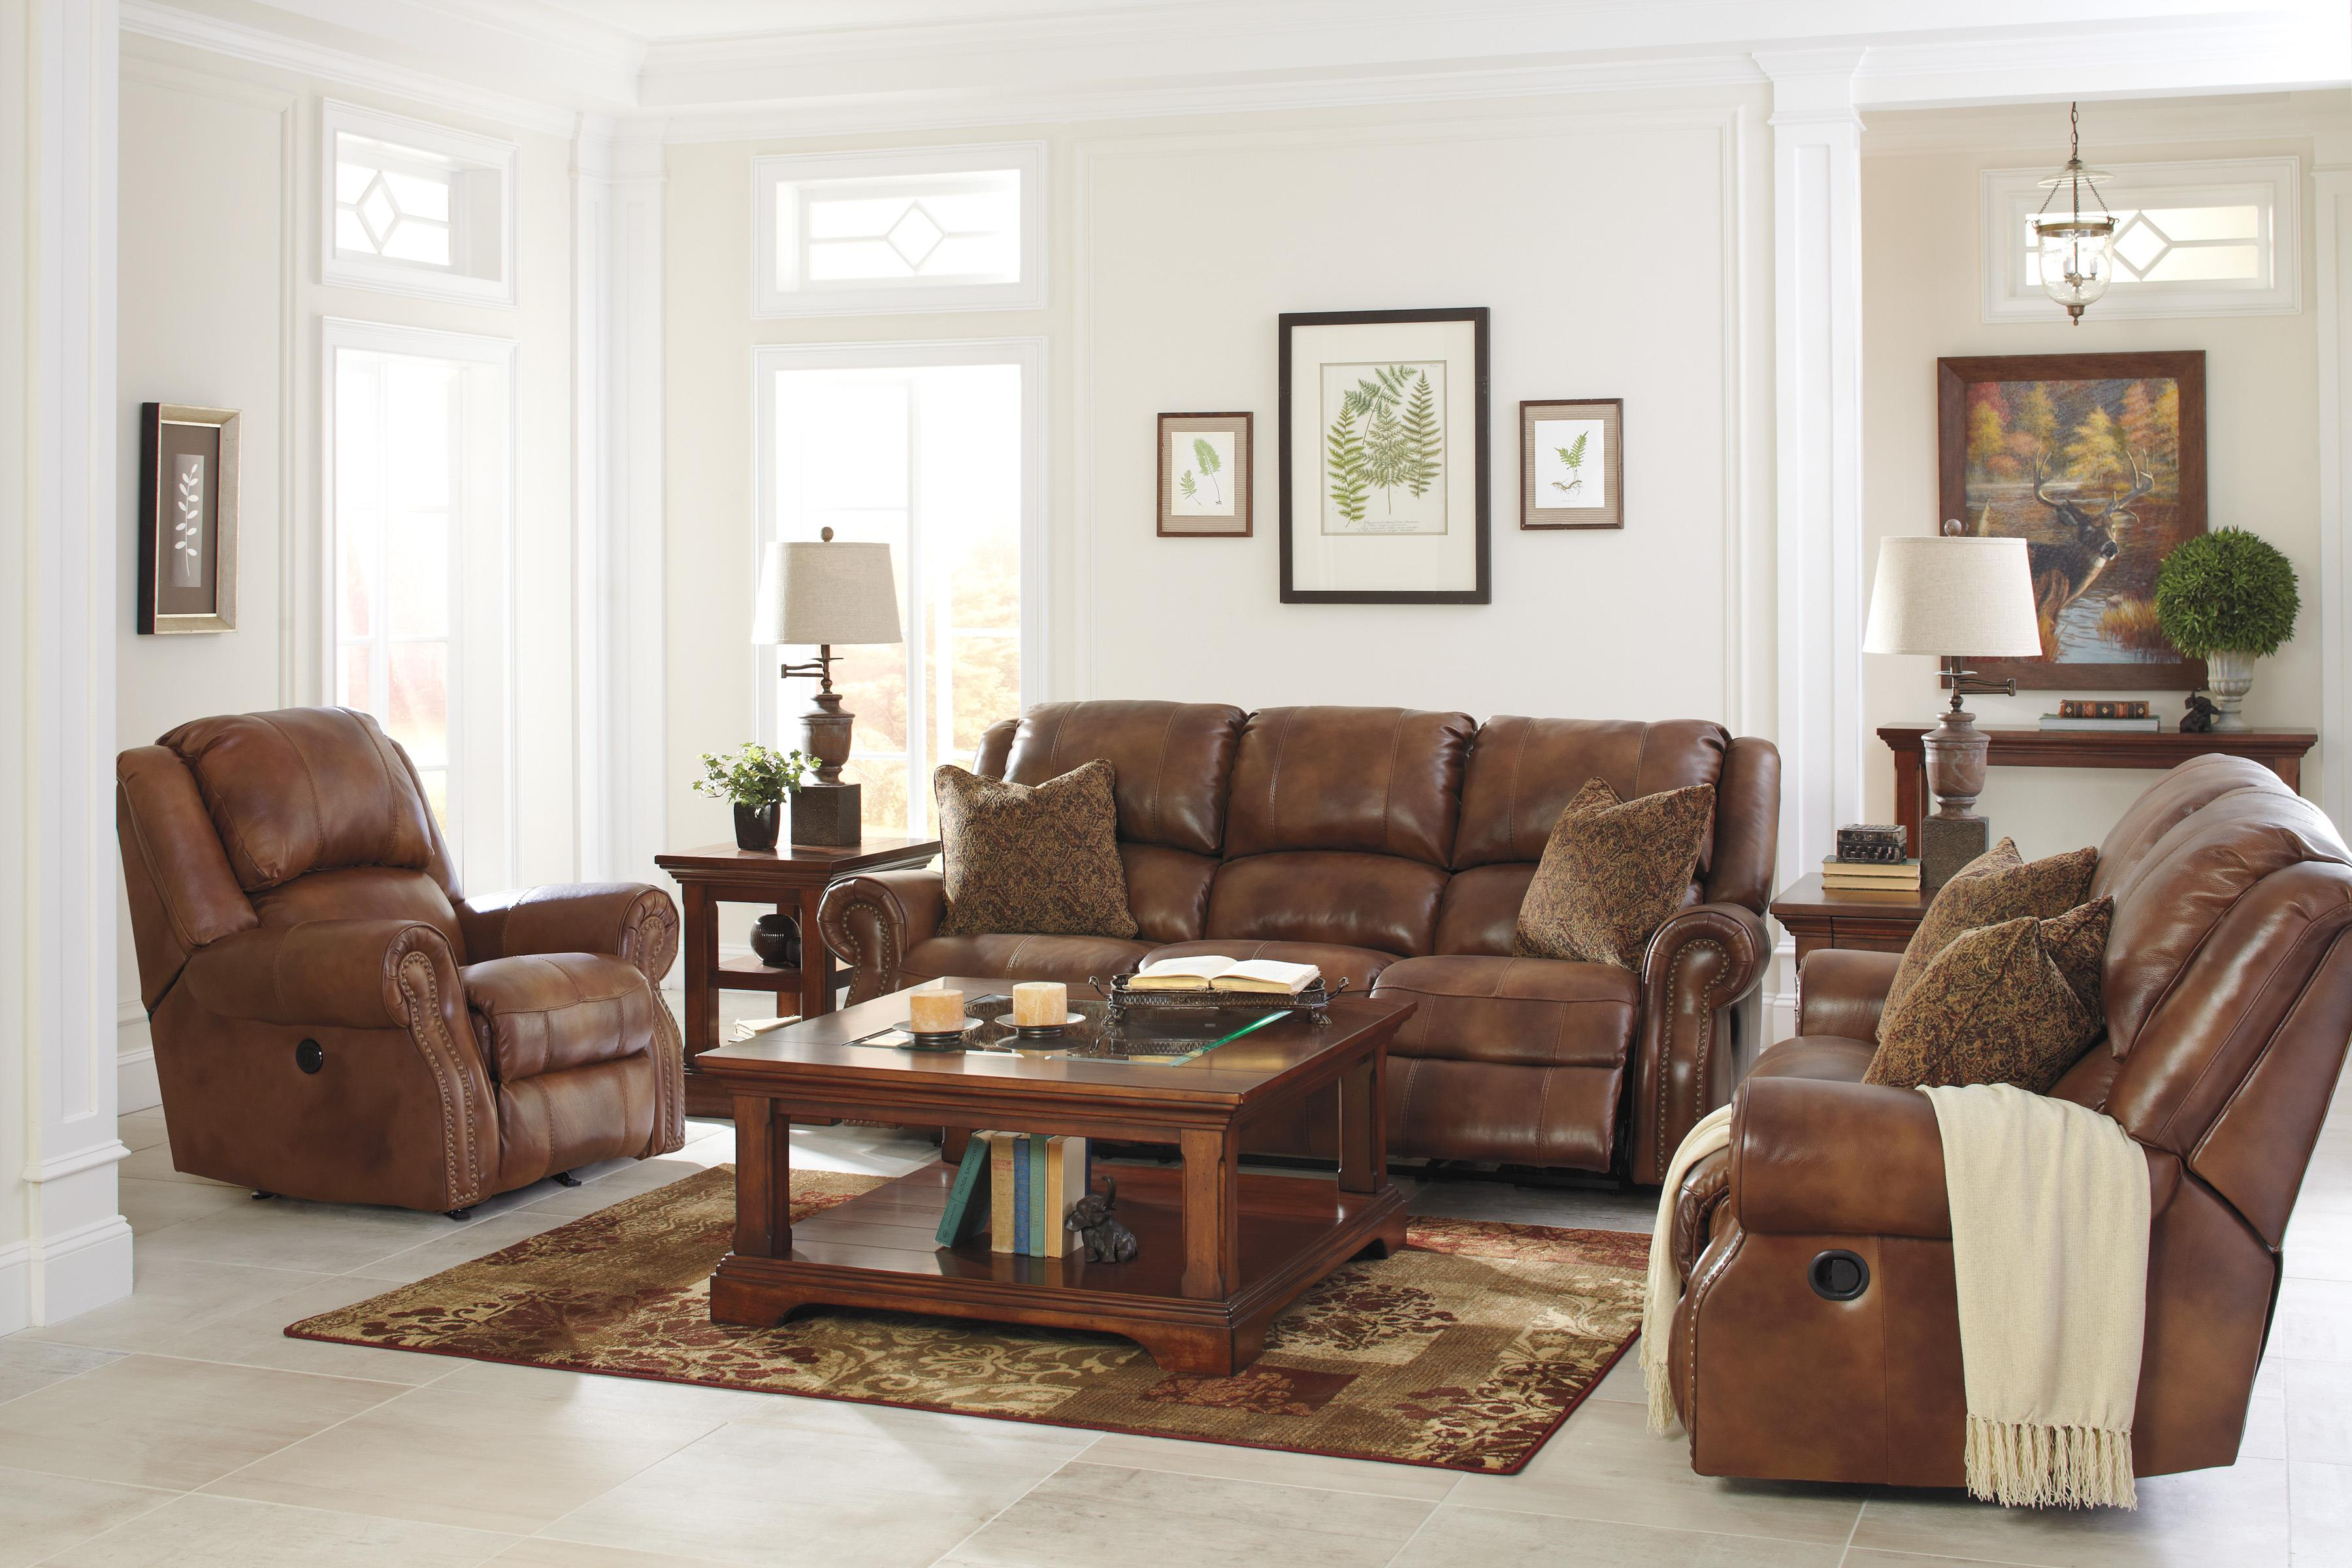 Signature Design by Ashley Walworth Reclining Living Room Group - Item Number: U78001 Living Room Group 3